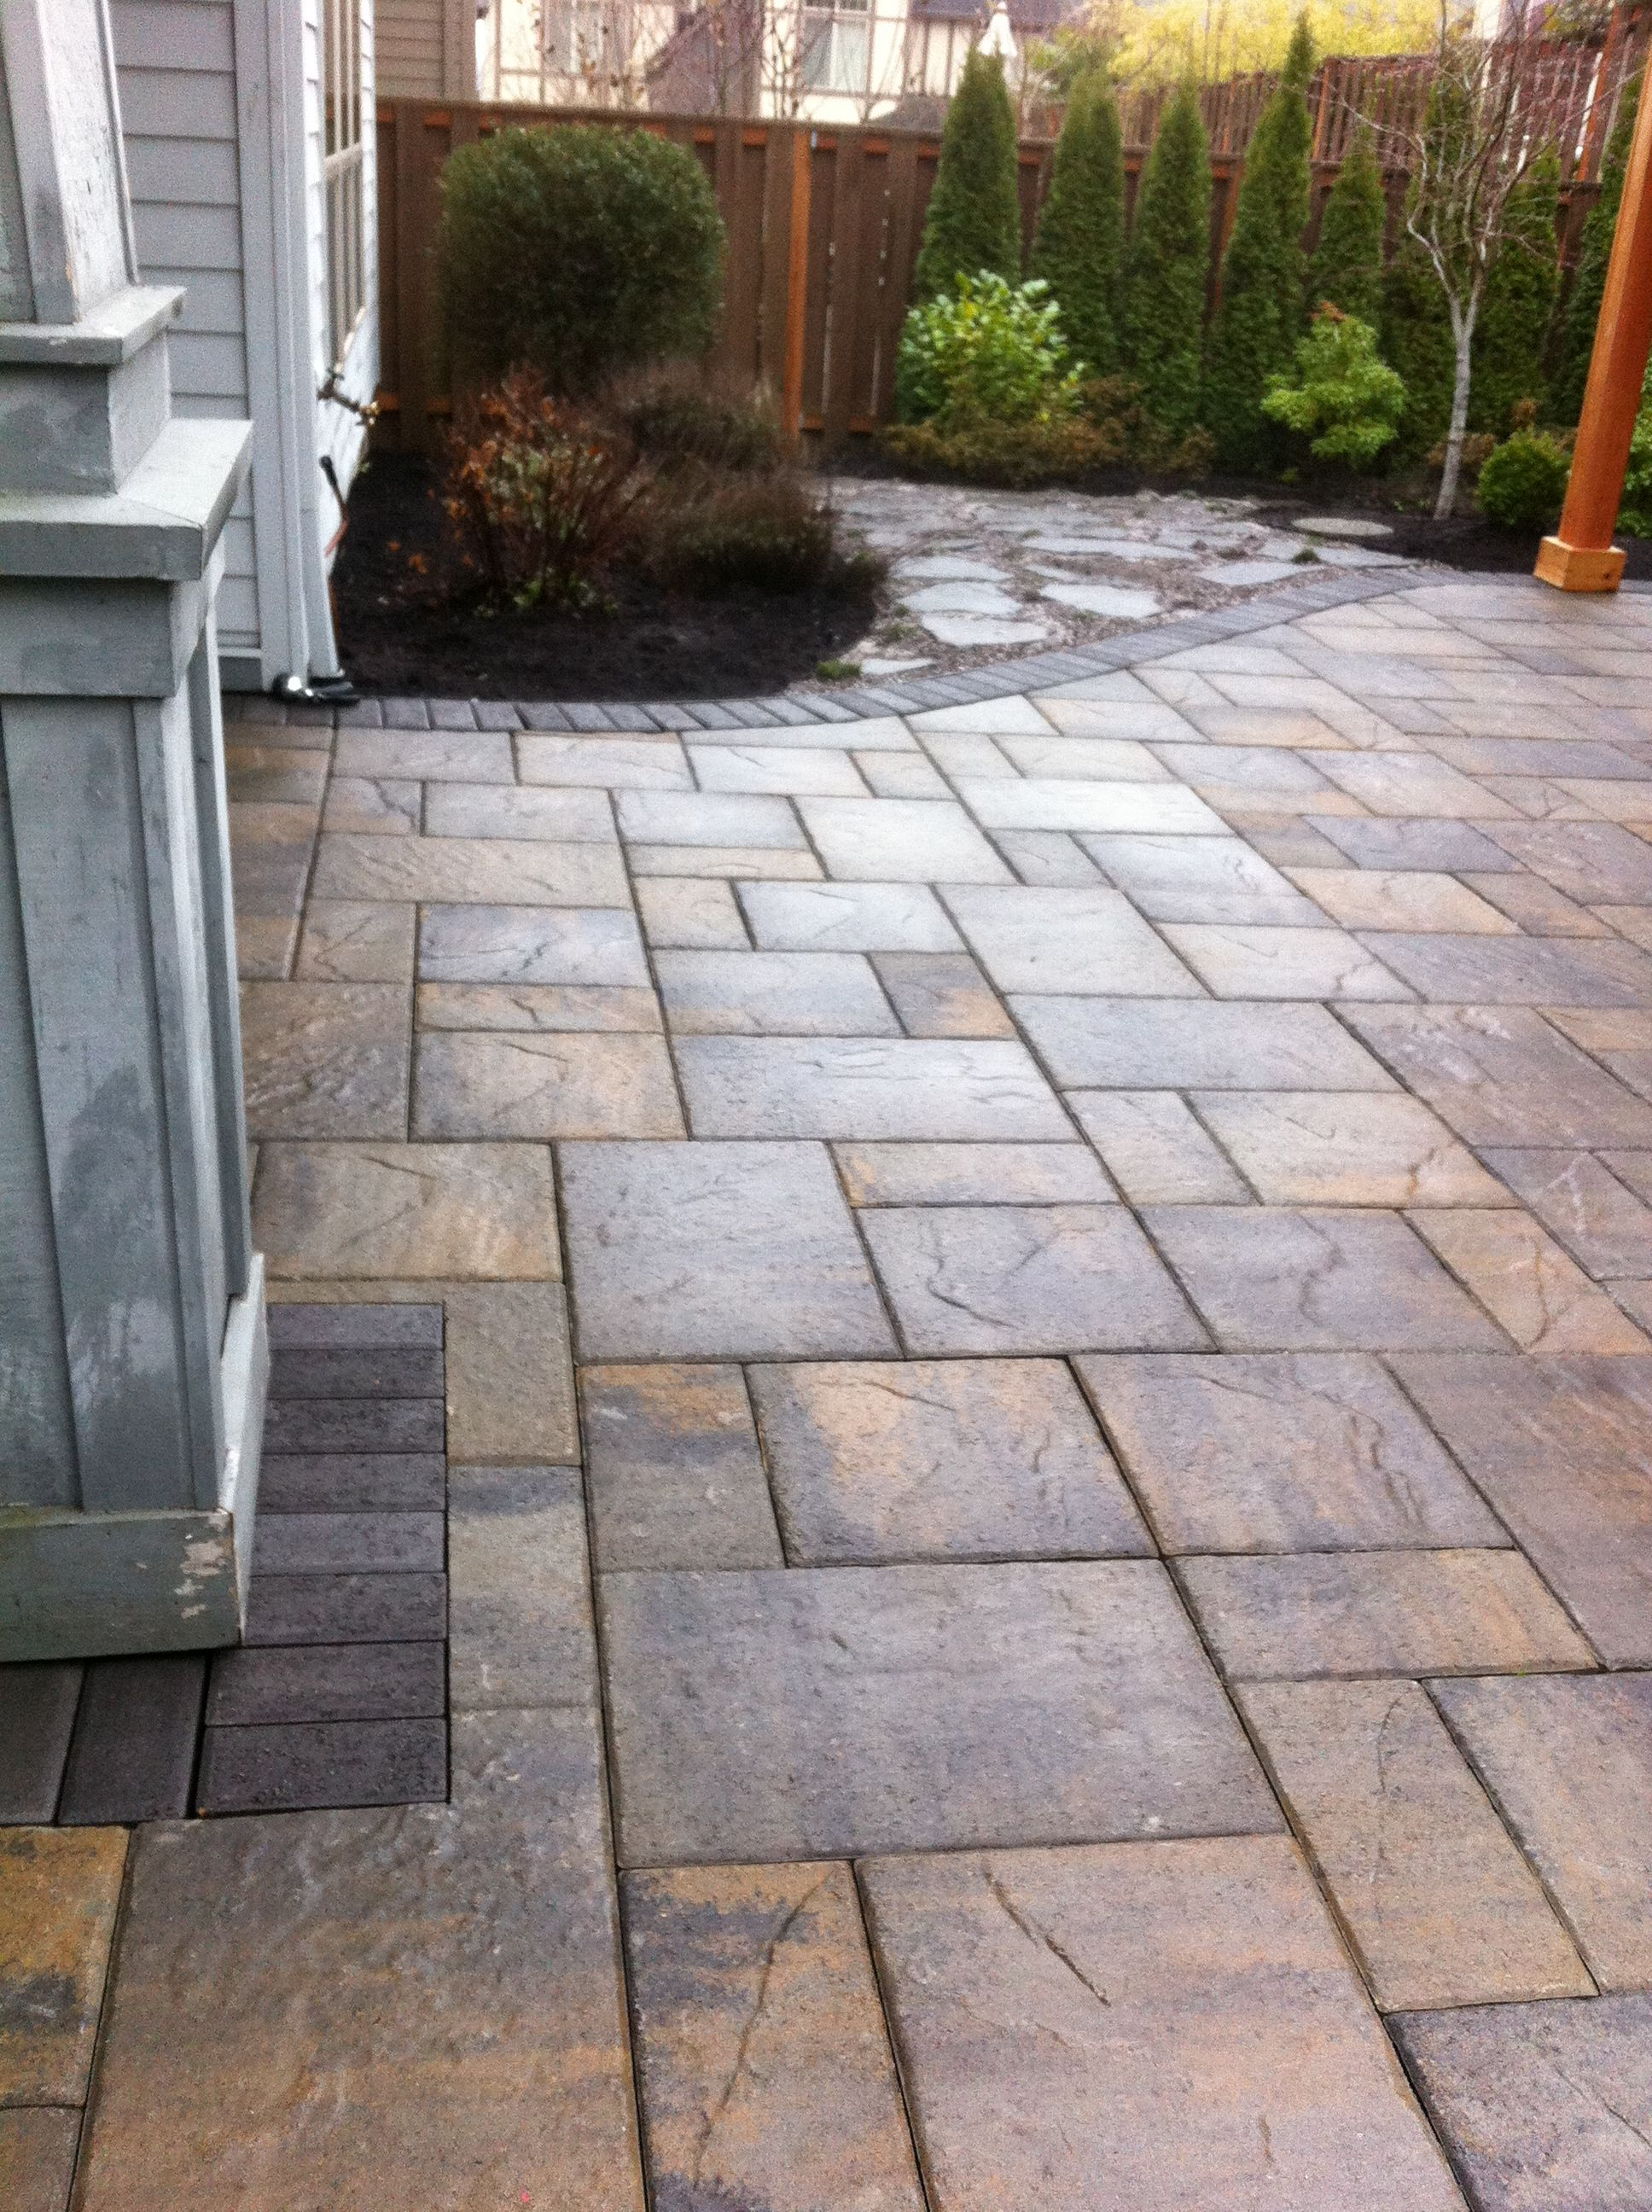 This Portland Oregon Backyard Was Treated To A New Back Patio Belgard La Paver Installed Over An Existing Concrete